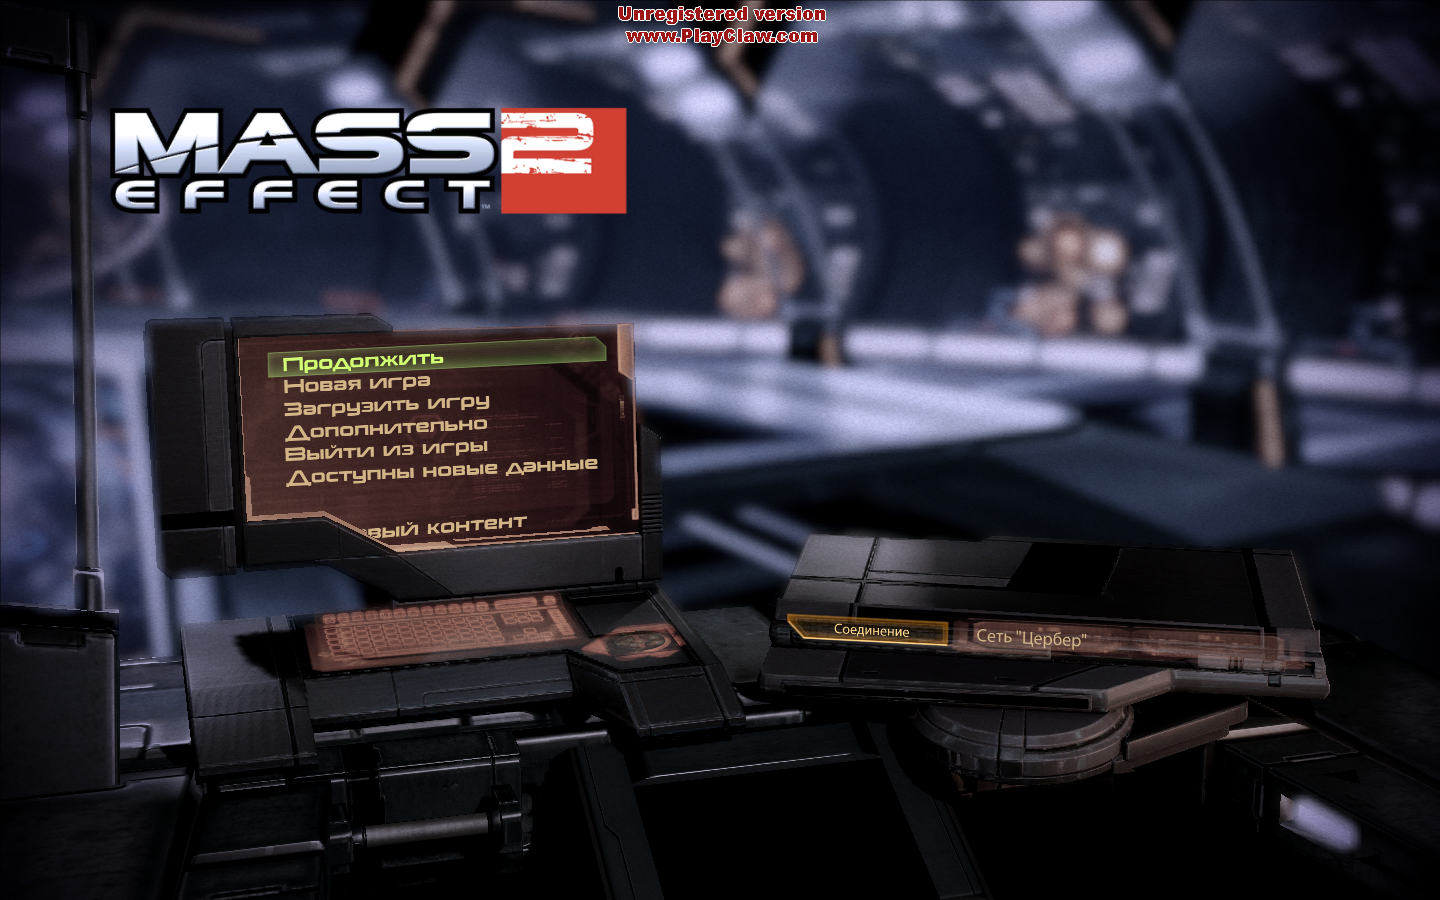 Mass effect 2 ps3 how to download  naked pics